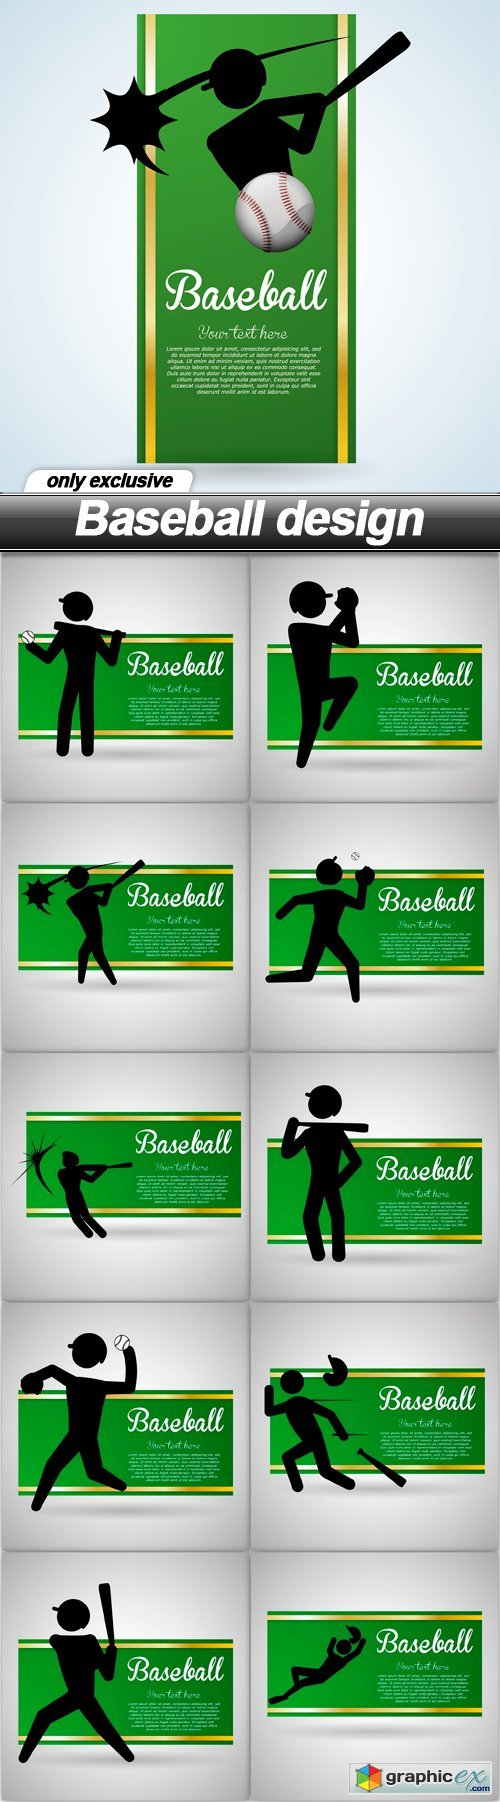 Baseball design - 20 EPS